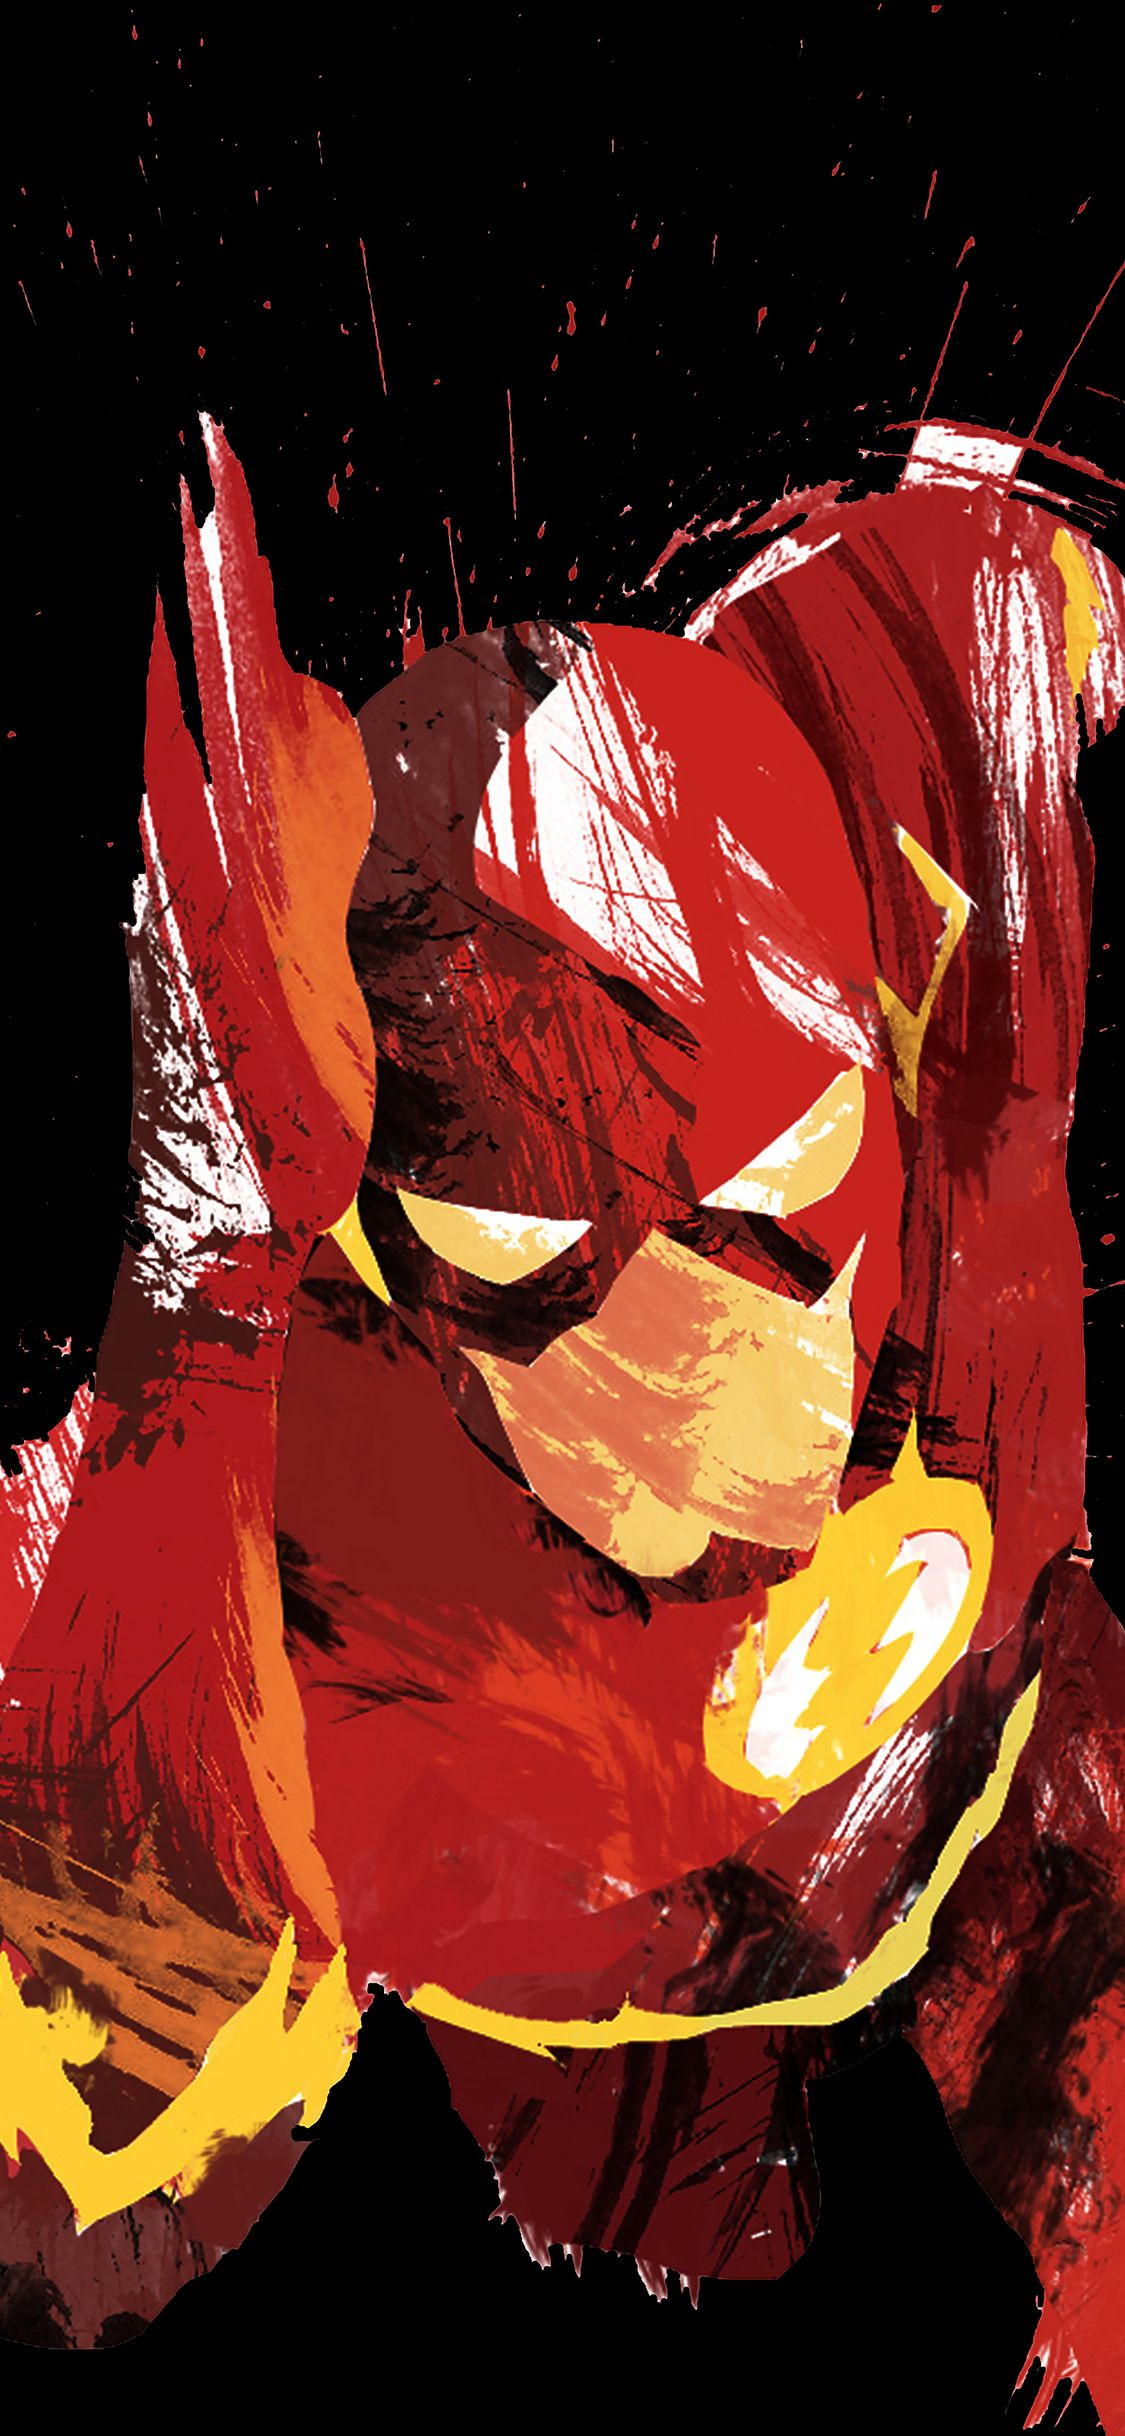 1125x2436 iPhonePapers - ah42-flash-speed-dark-hero-illust-minimal-art